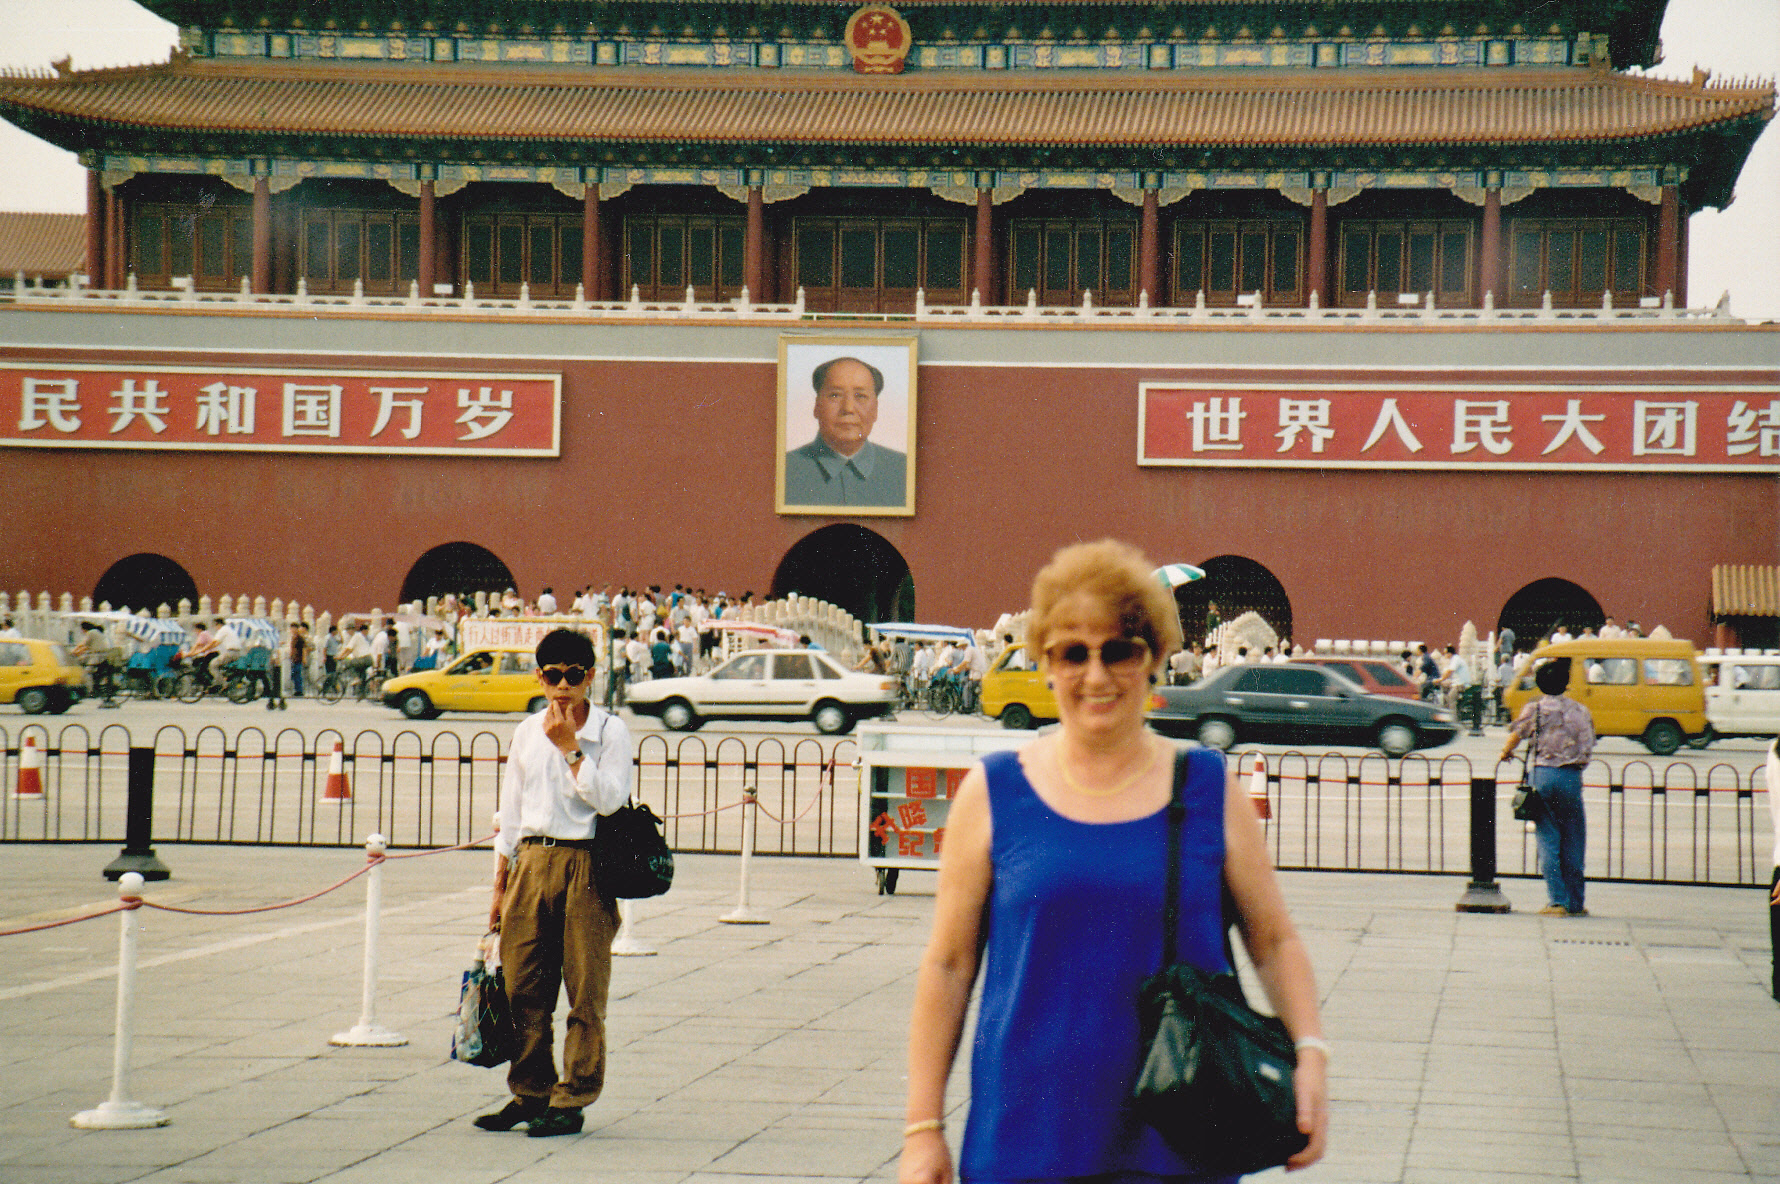 A very excited me to be in Tiananmen square Beijing, even dressed for the occasion!